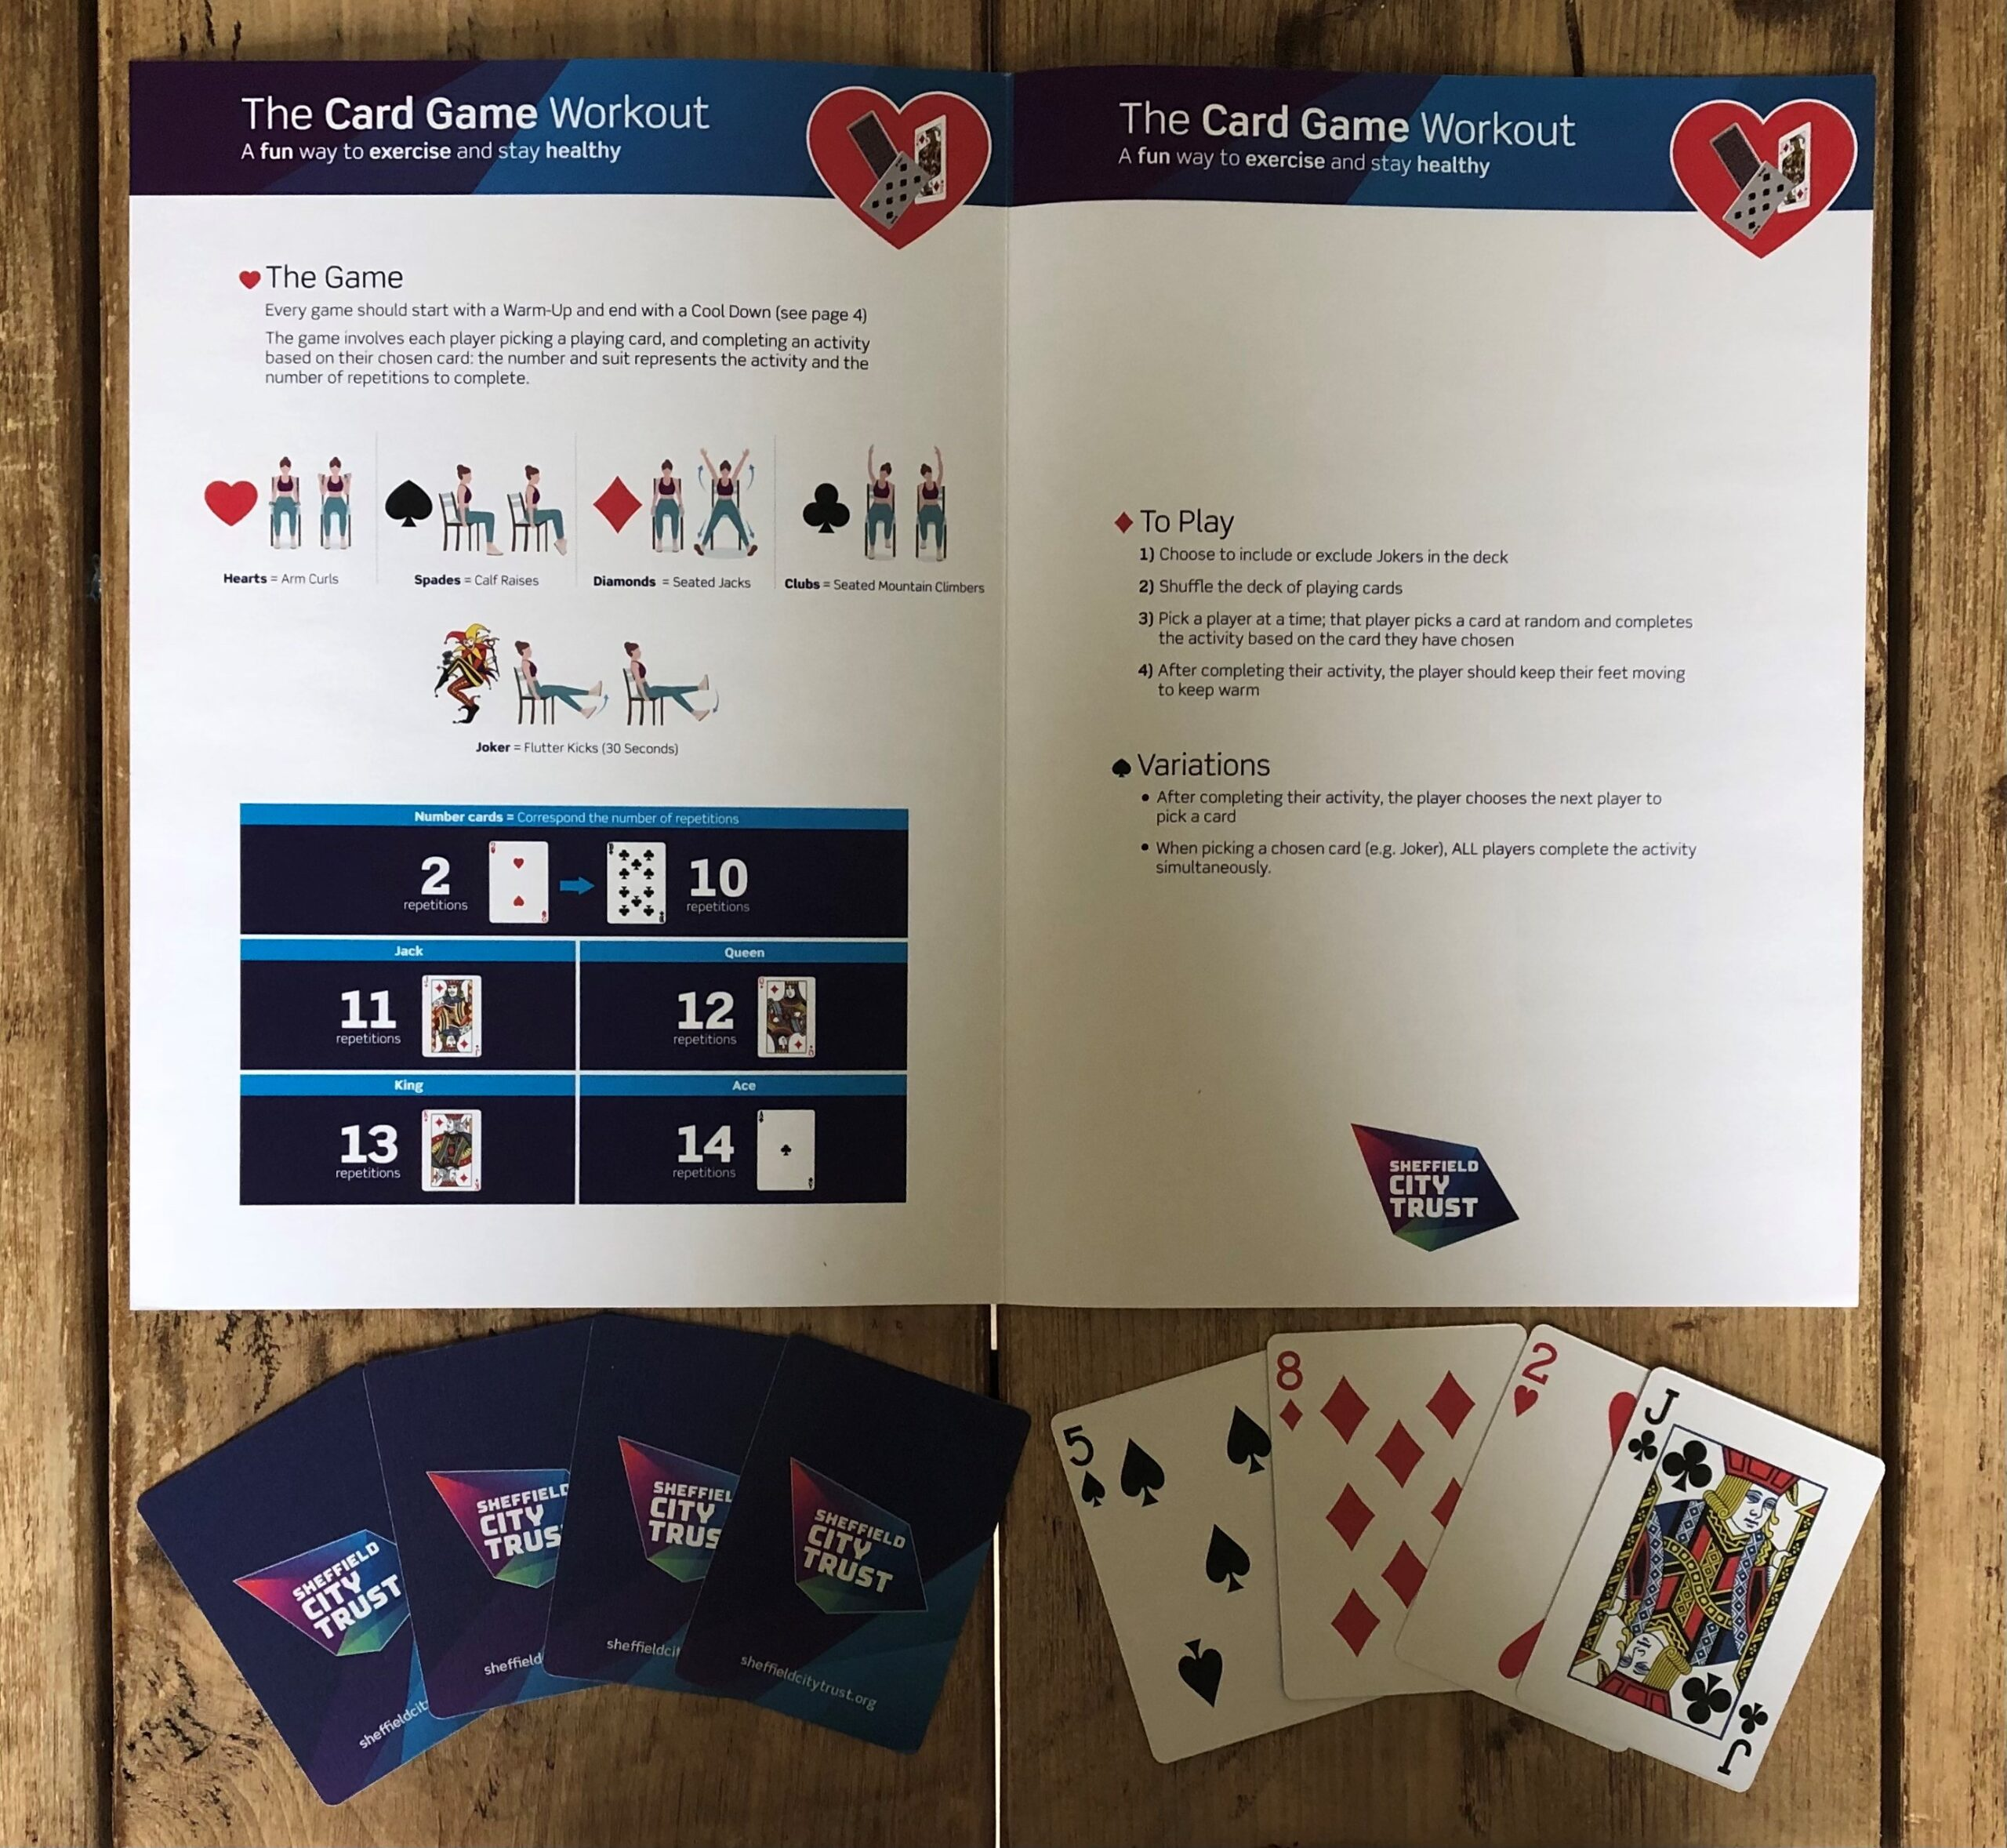 The card game instructions